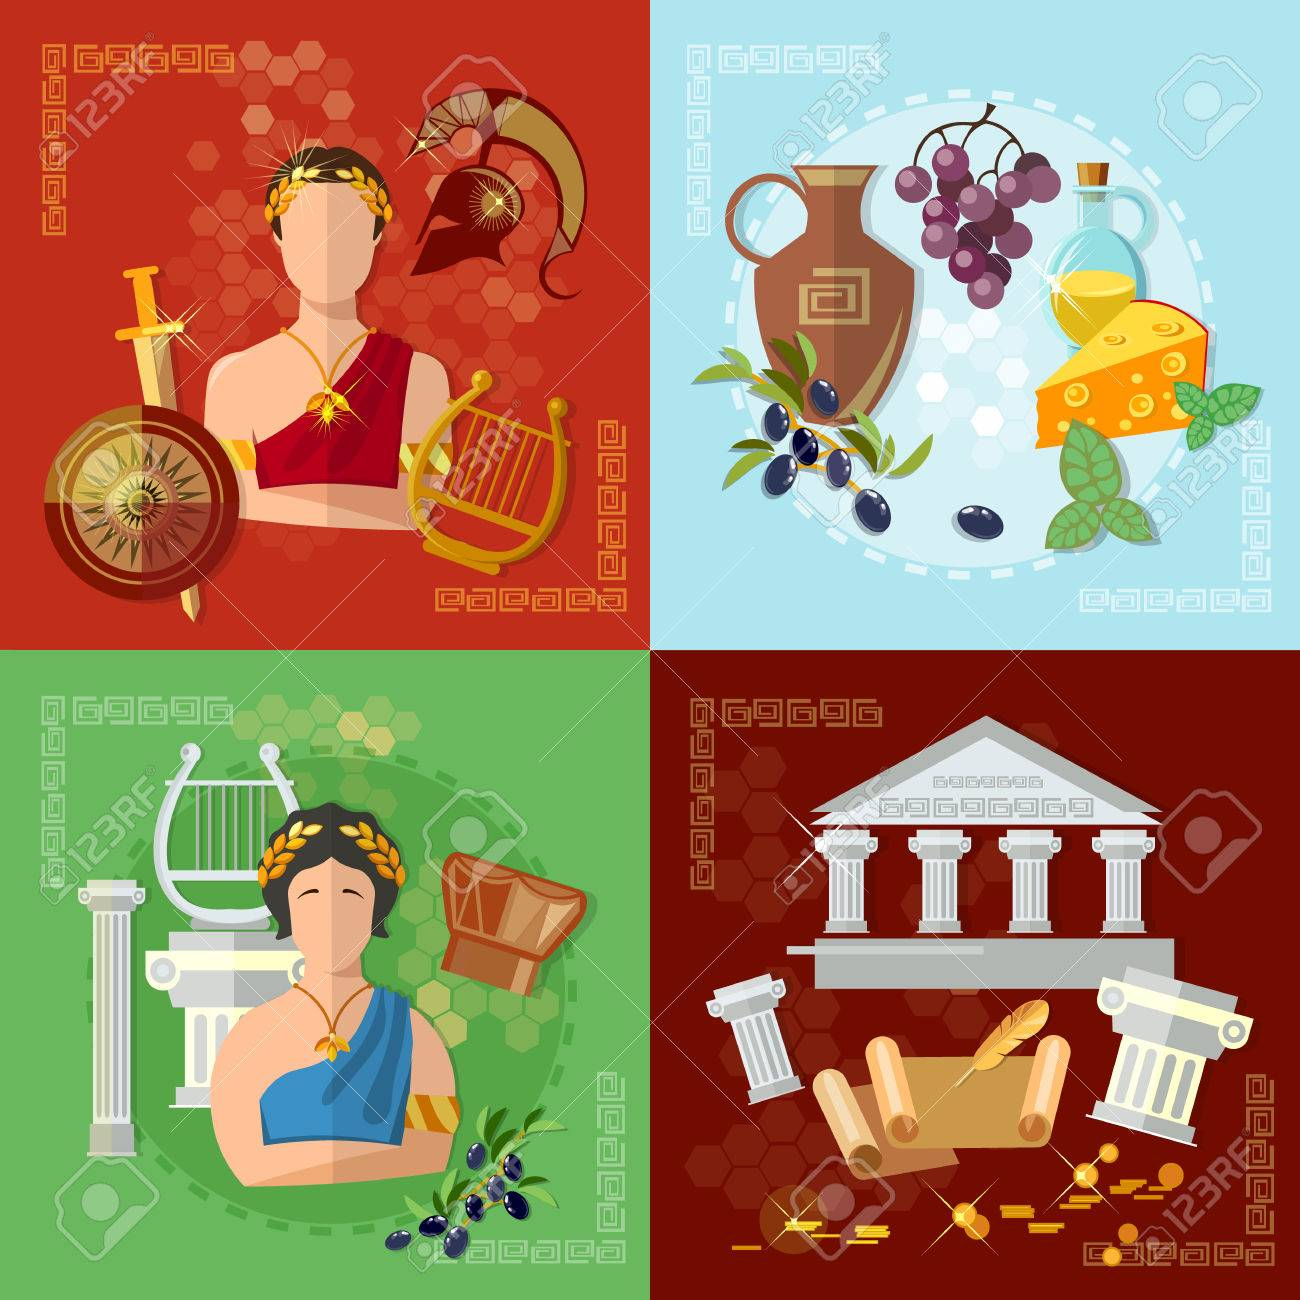 Ancient Greece and Rome tradition and culture vector set collection - 52596474